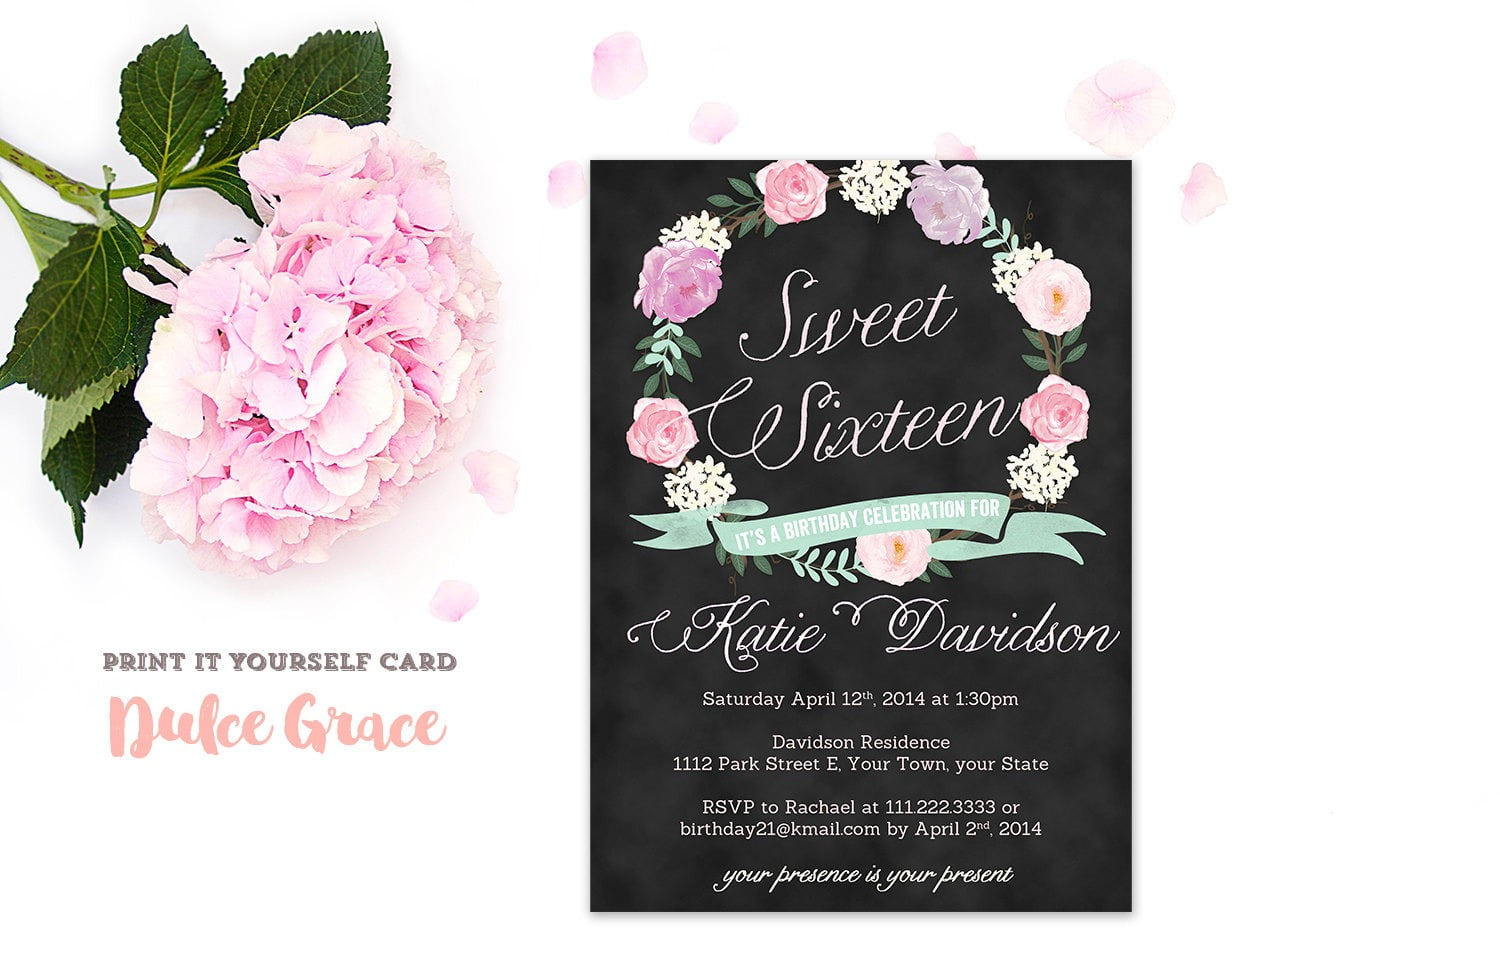 Elegant Sweet Sixteen Invitation 87 For Hd Image Picture With